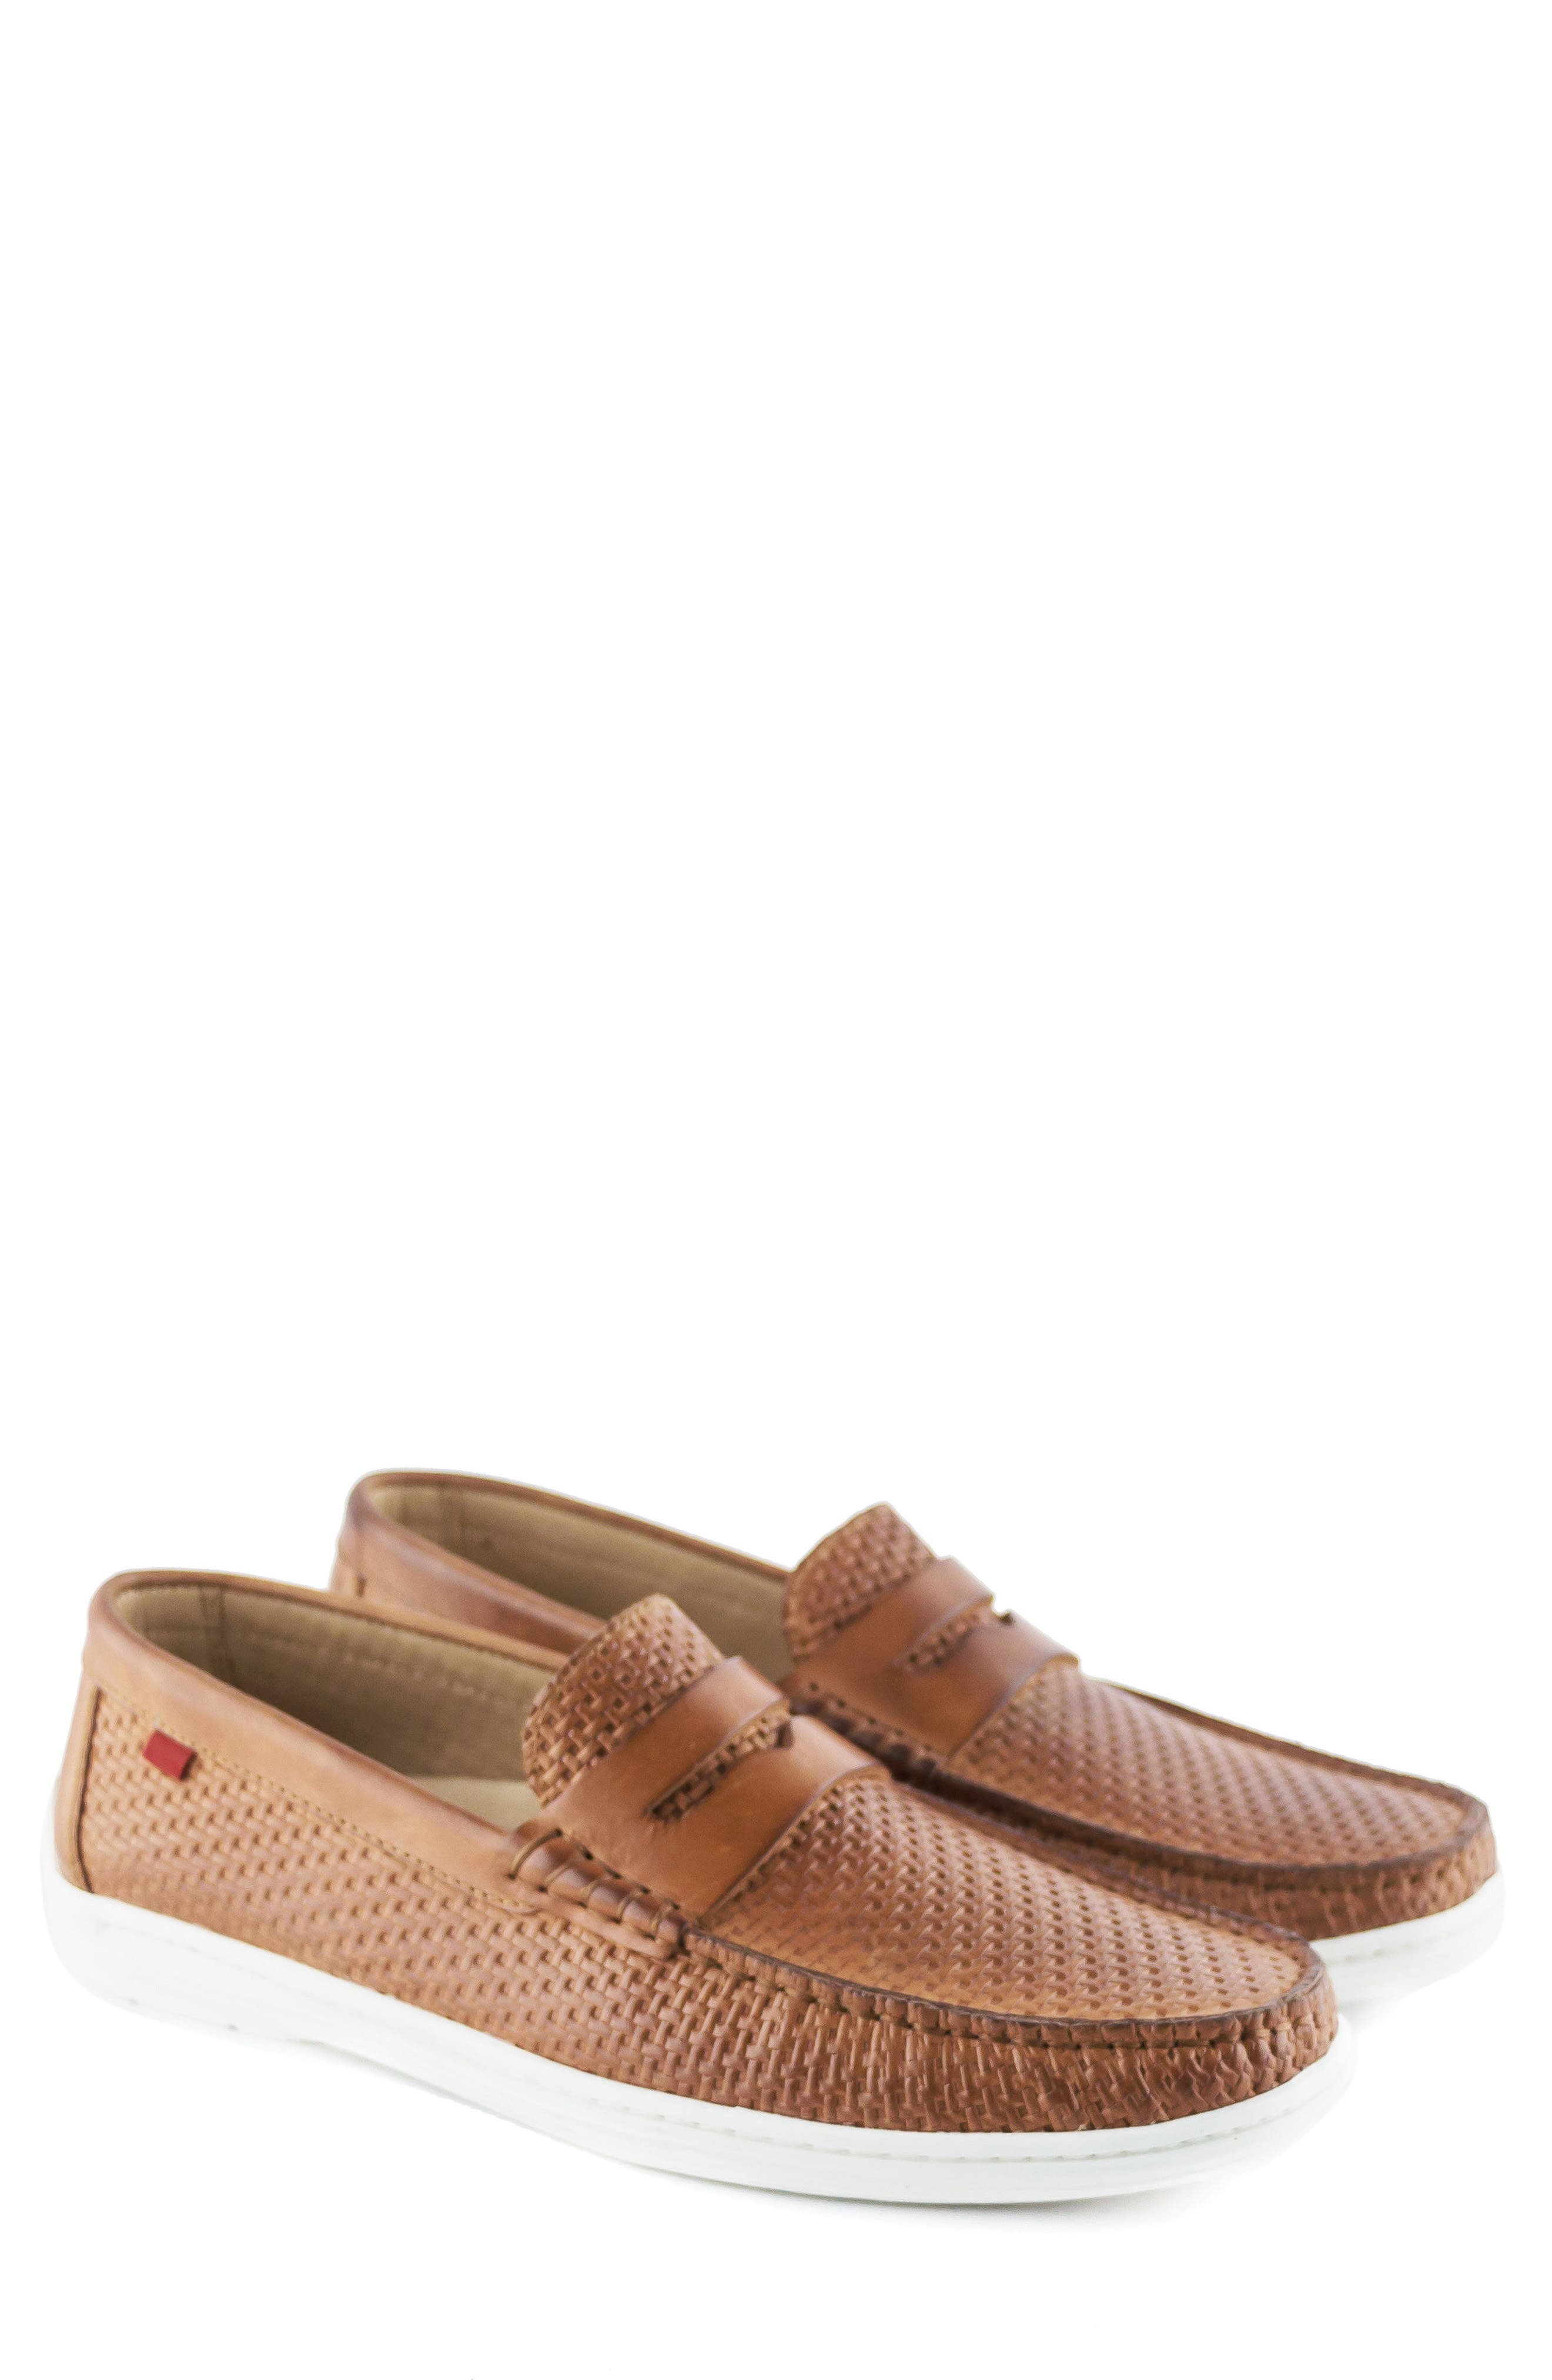 Atlantic Penny Loafer,                             Alternate thumbnail 44, color,